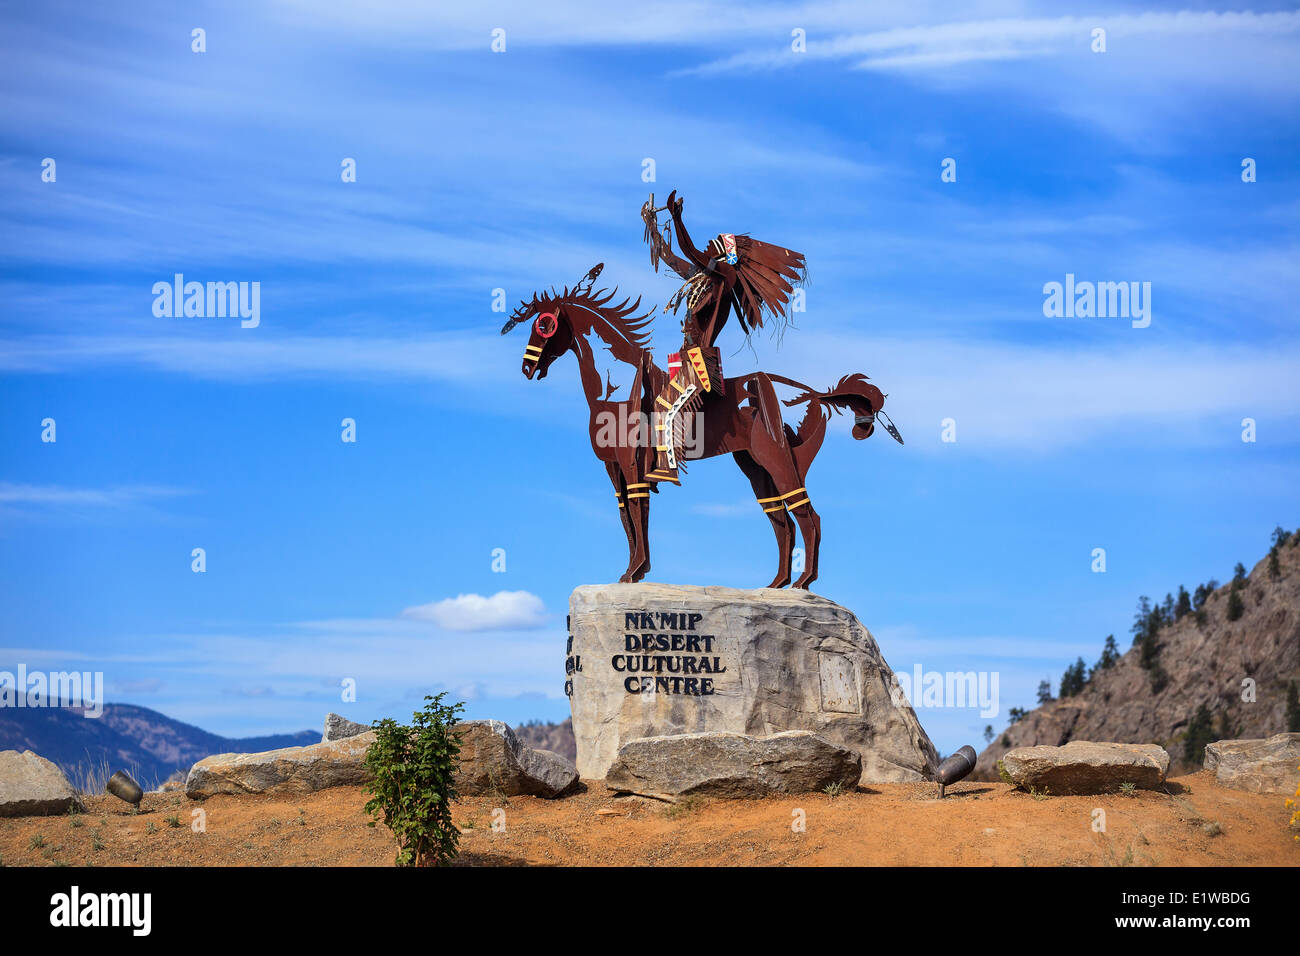 First Nations sculpture, Nk'MIP Desert Cultural Centre, Osoyoos, British Columbia, Canada - Stock Image